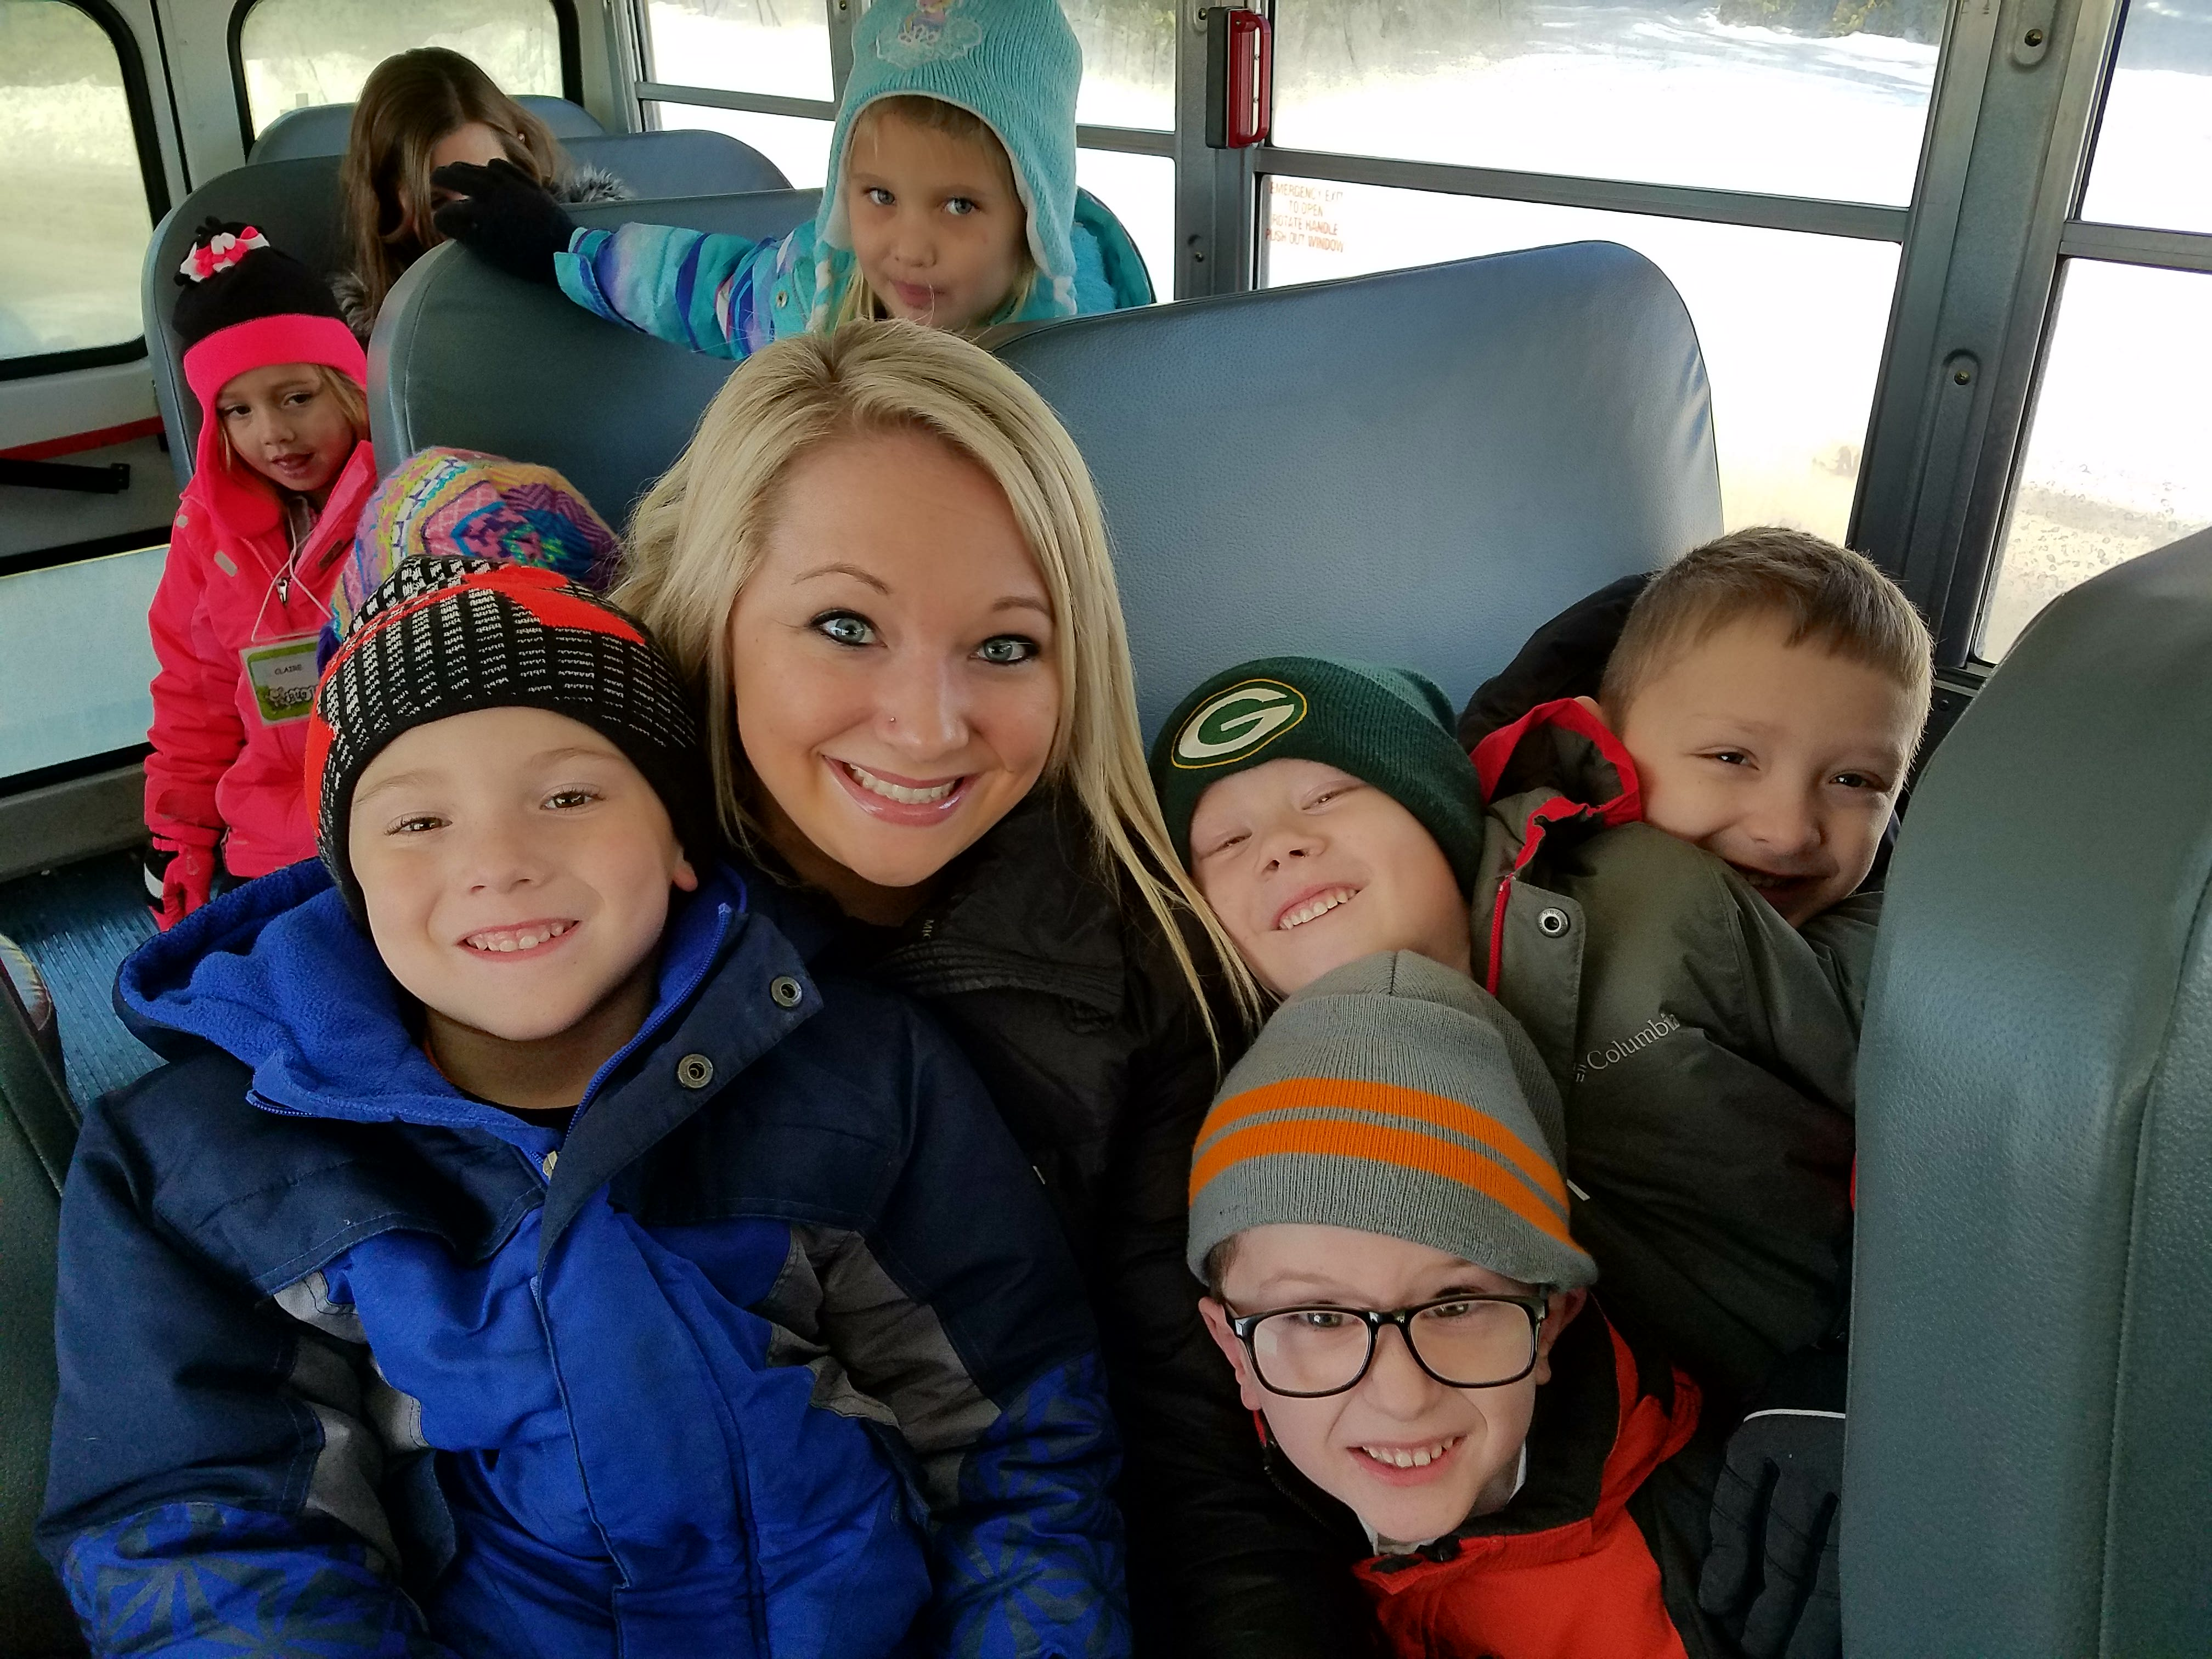 Kindergarten teacher with kids on the bus